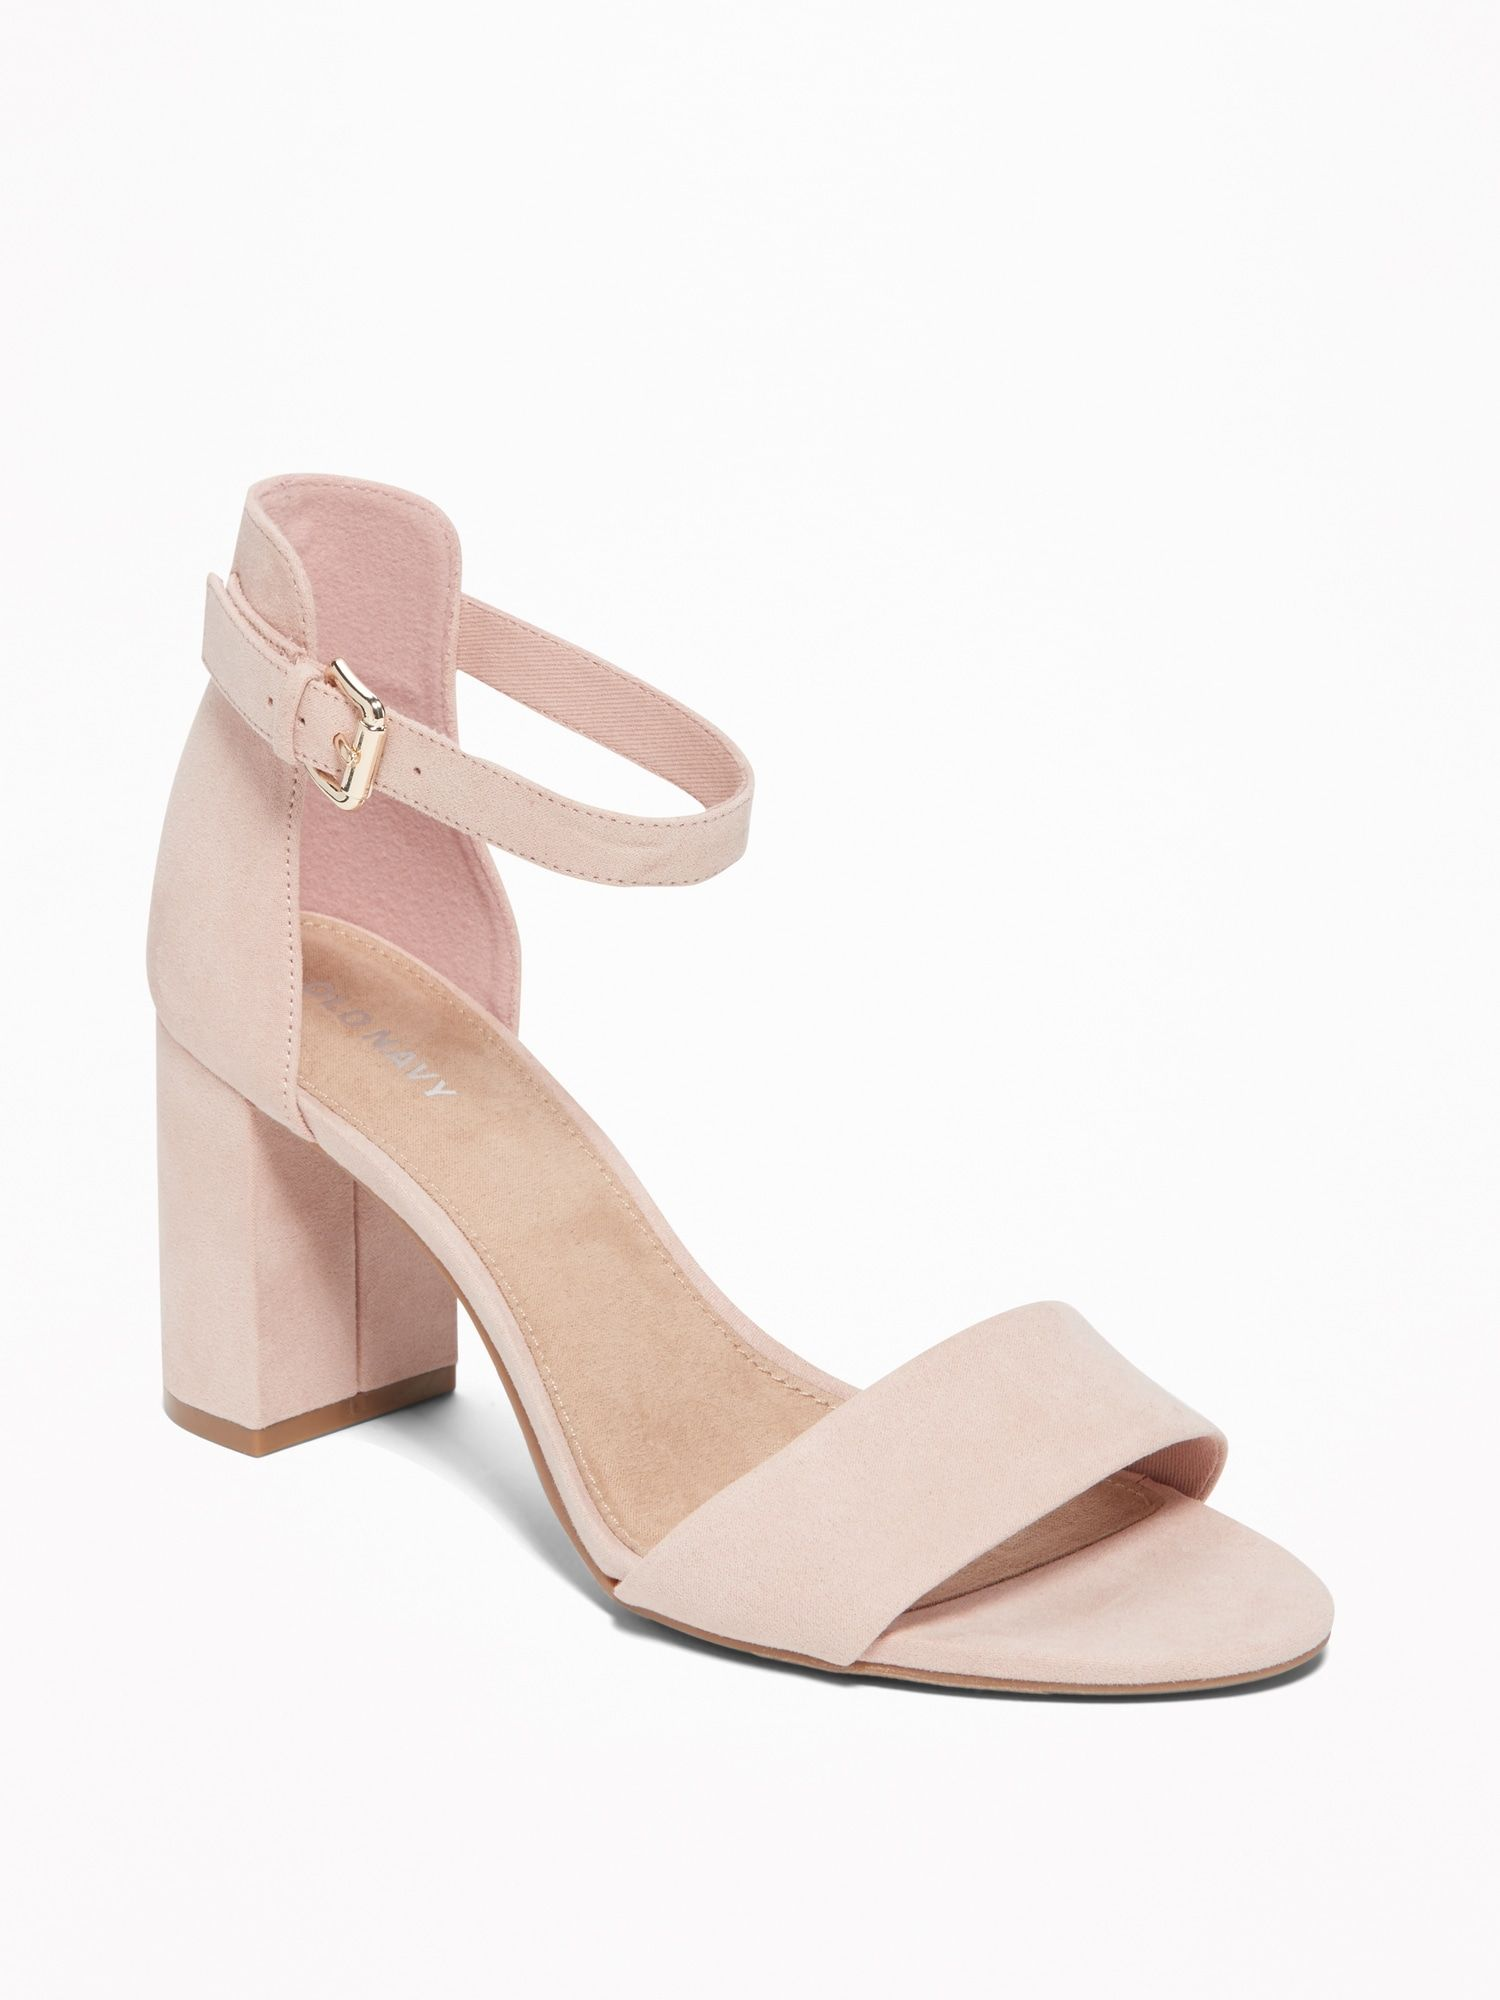 fb3baccbb Shop Old Navy's Faux-Suede Block-Heel Sandals for Women: Who says only  boots are made for walking? This classy (and sassy) block heel takes you  from desk to ...